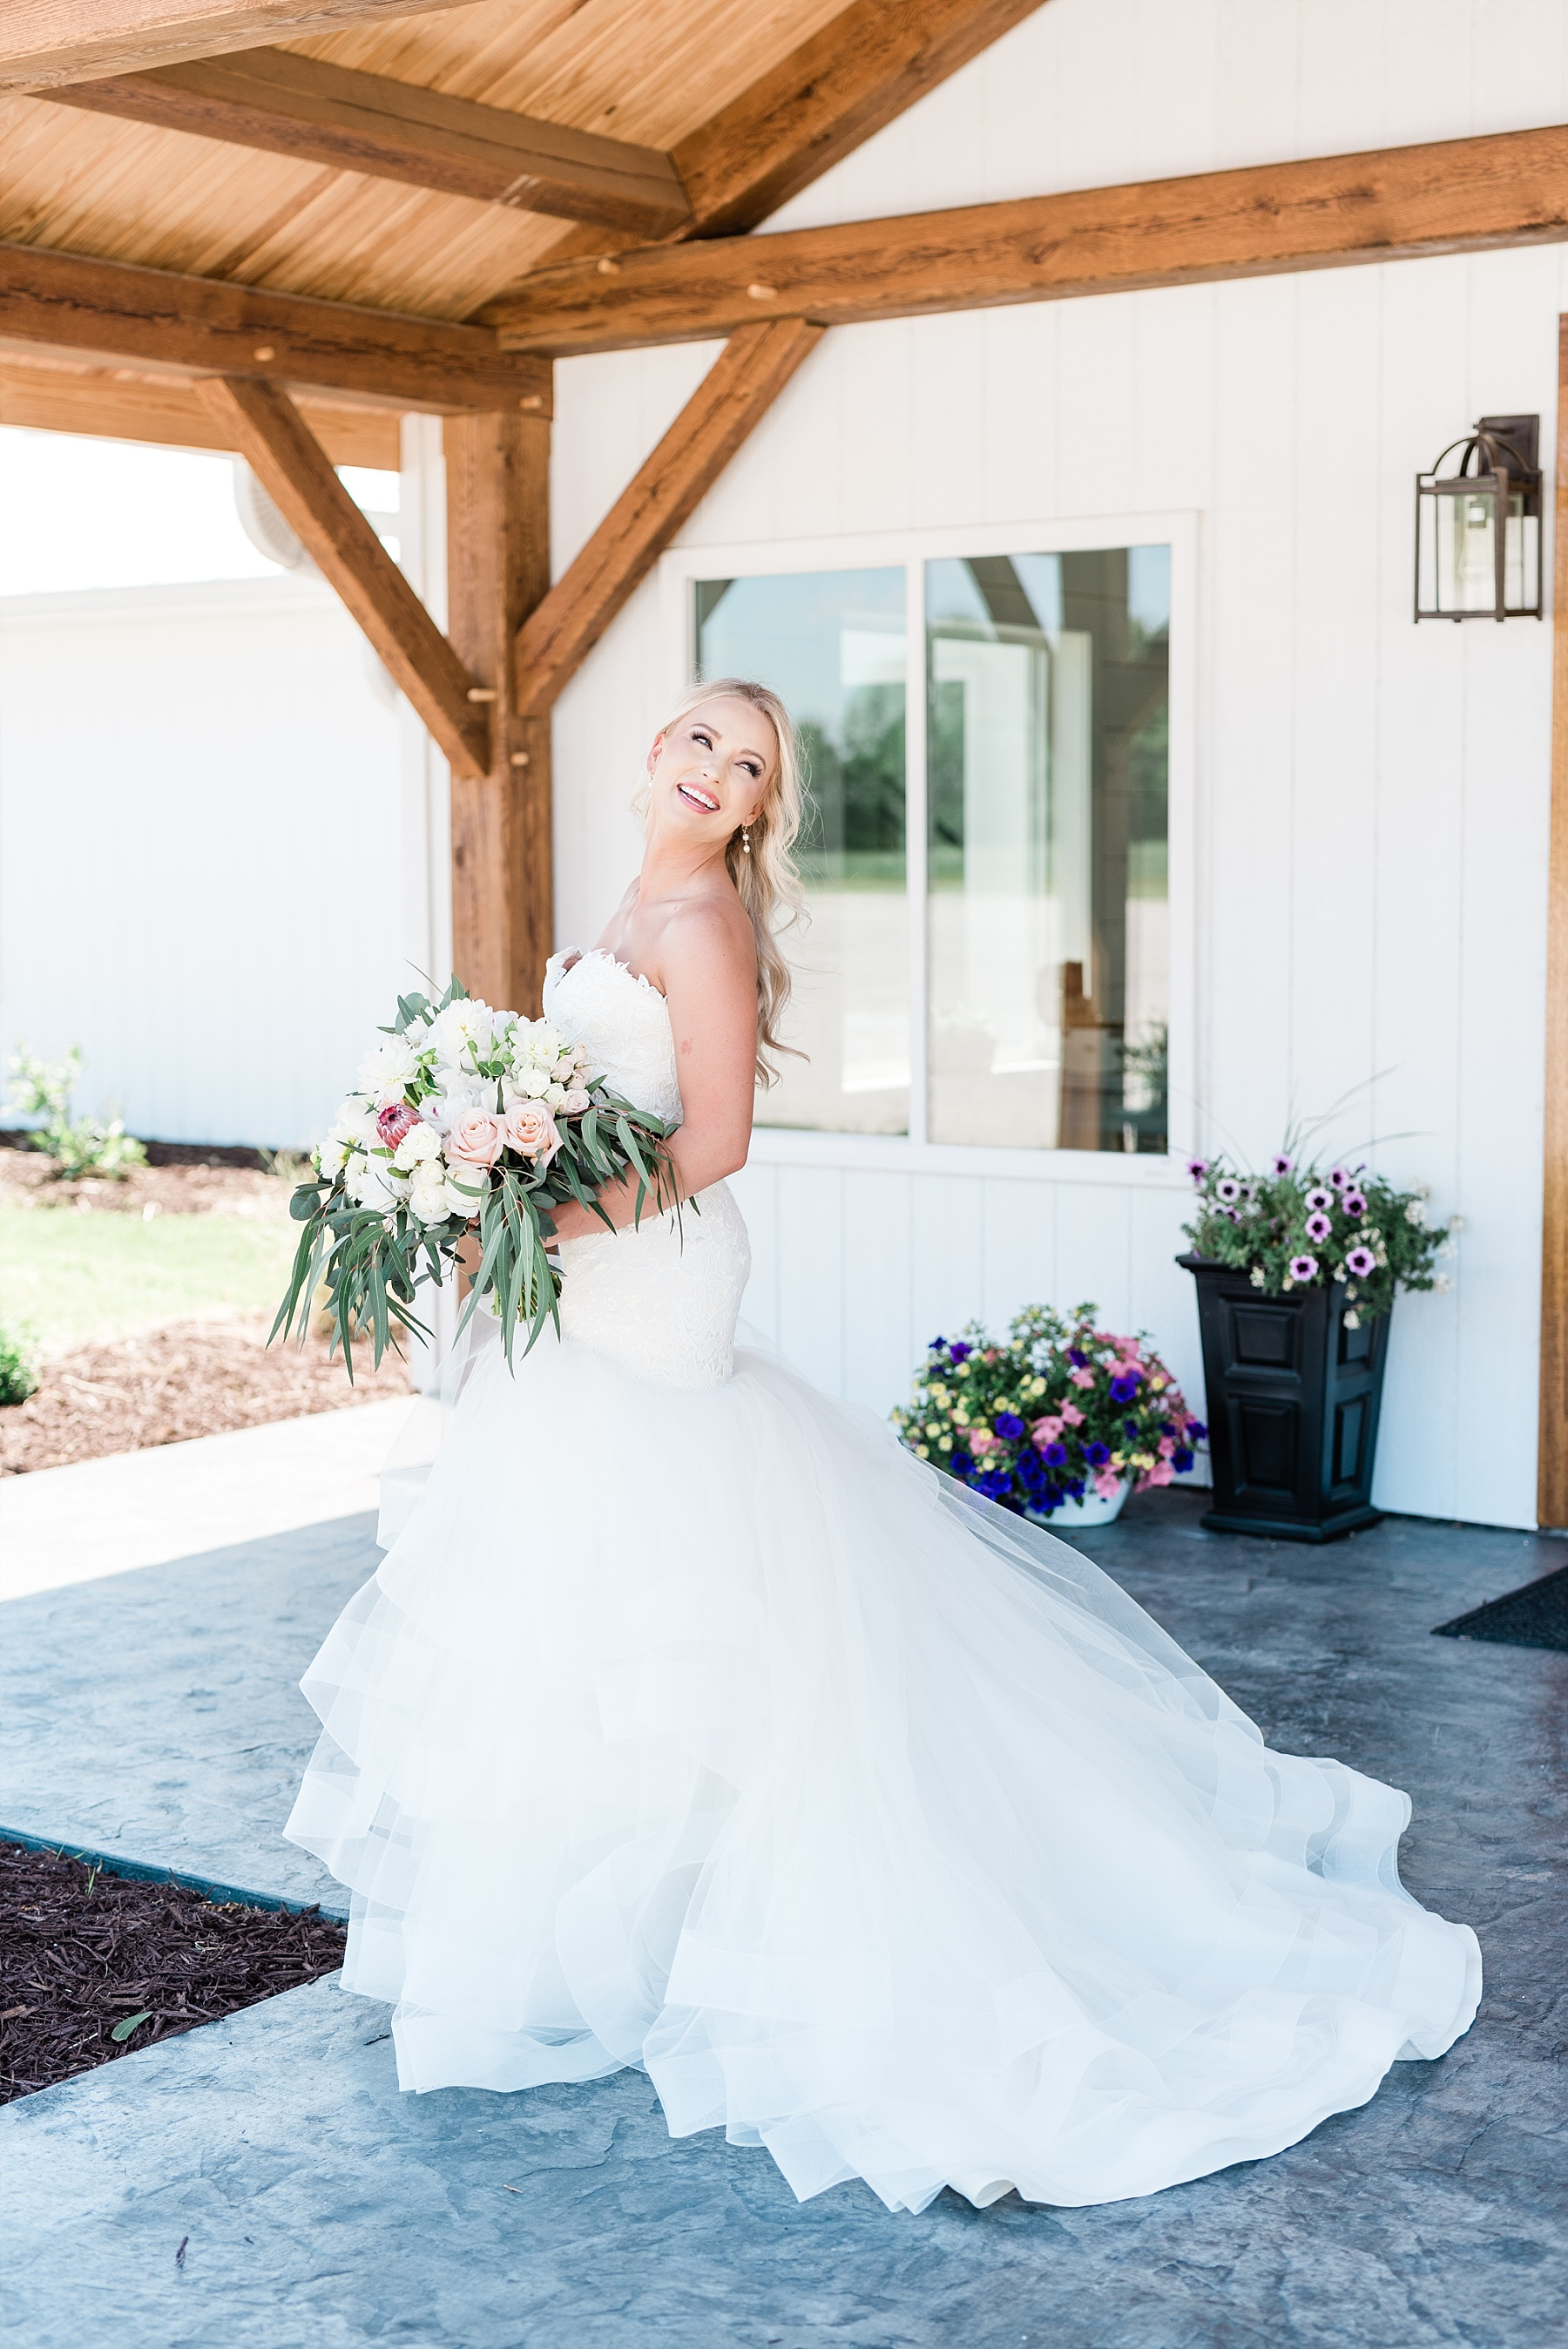 Stunning Heartfelt, Elegant, Fine Art, Chic, Outdoor Spring Wedding with Blush, Cream, Greenery, Rose Gold, and Sequins at Emerson Fields Venue by Kelsi Kliethermes Photography_0021.jpg